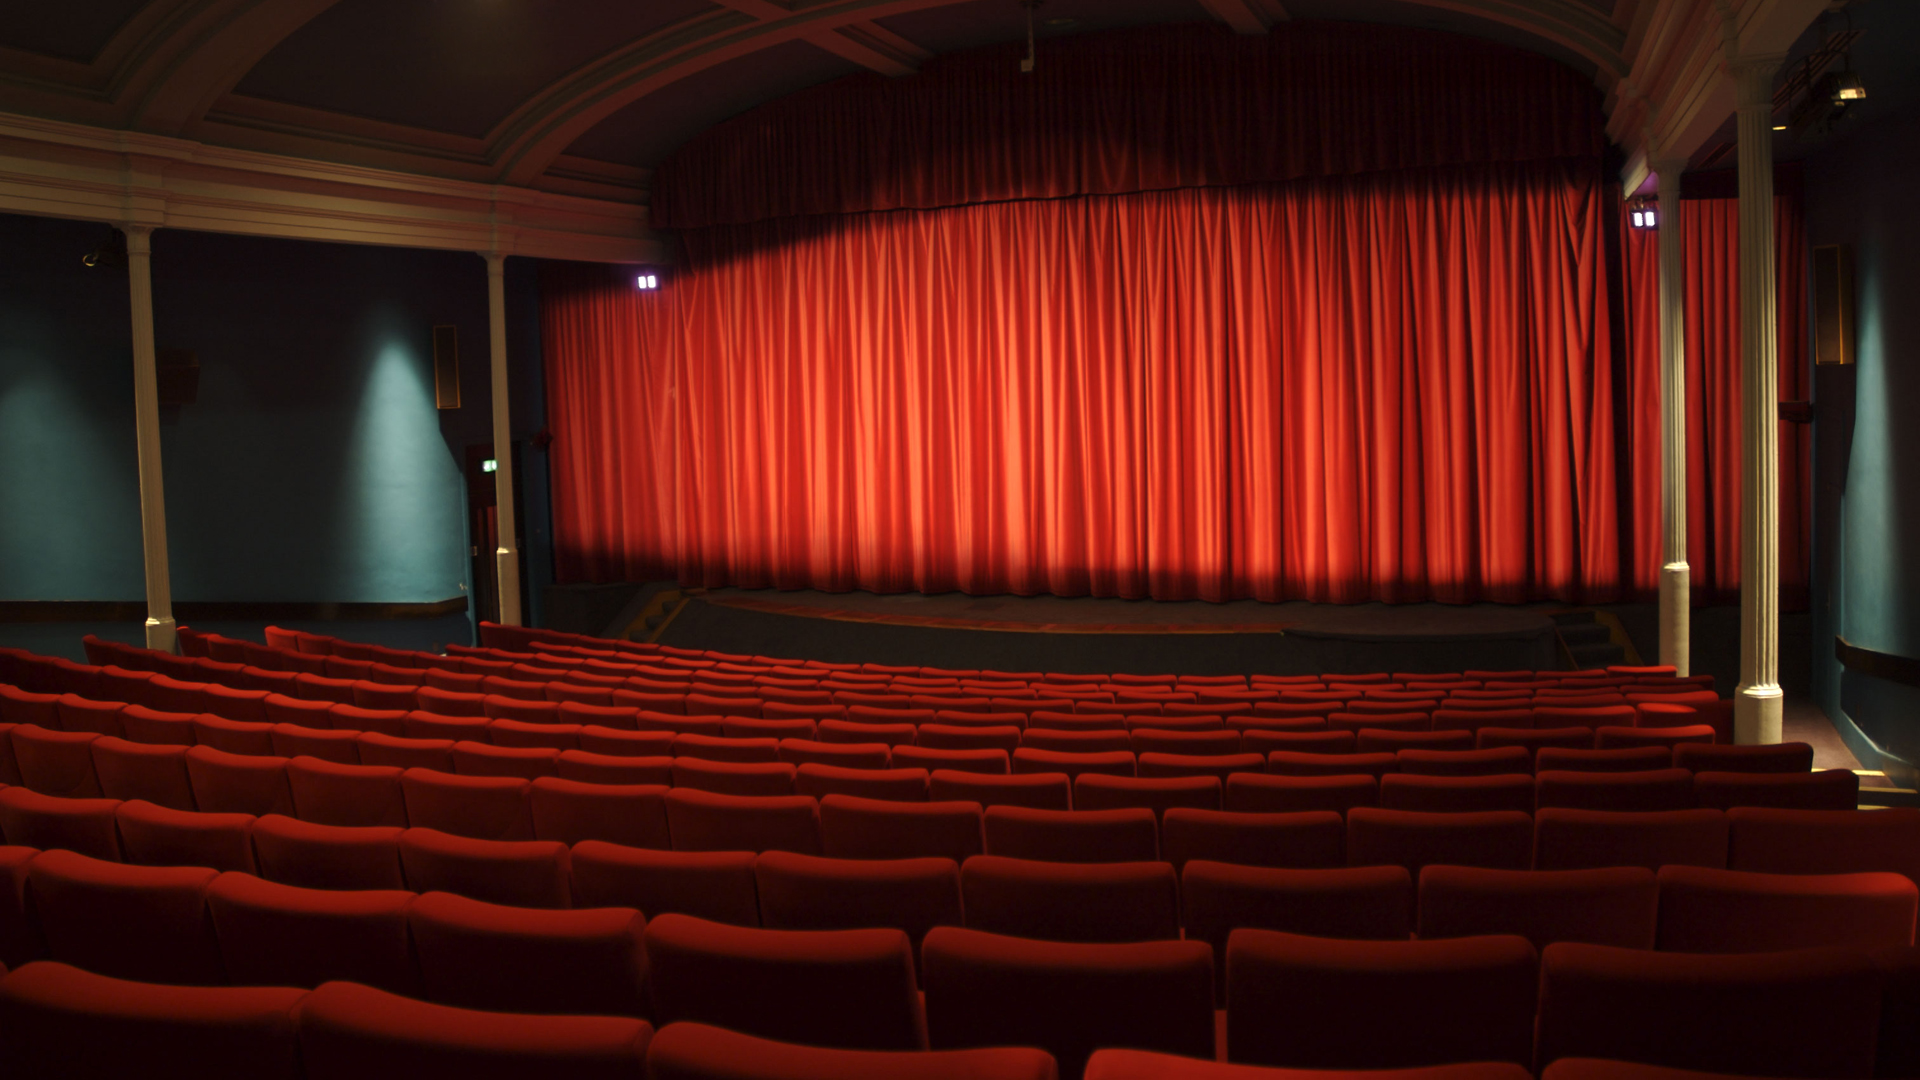 Home theater wallpaper wallpapersafari - Home theater wallpaper ...